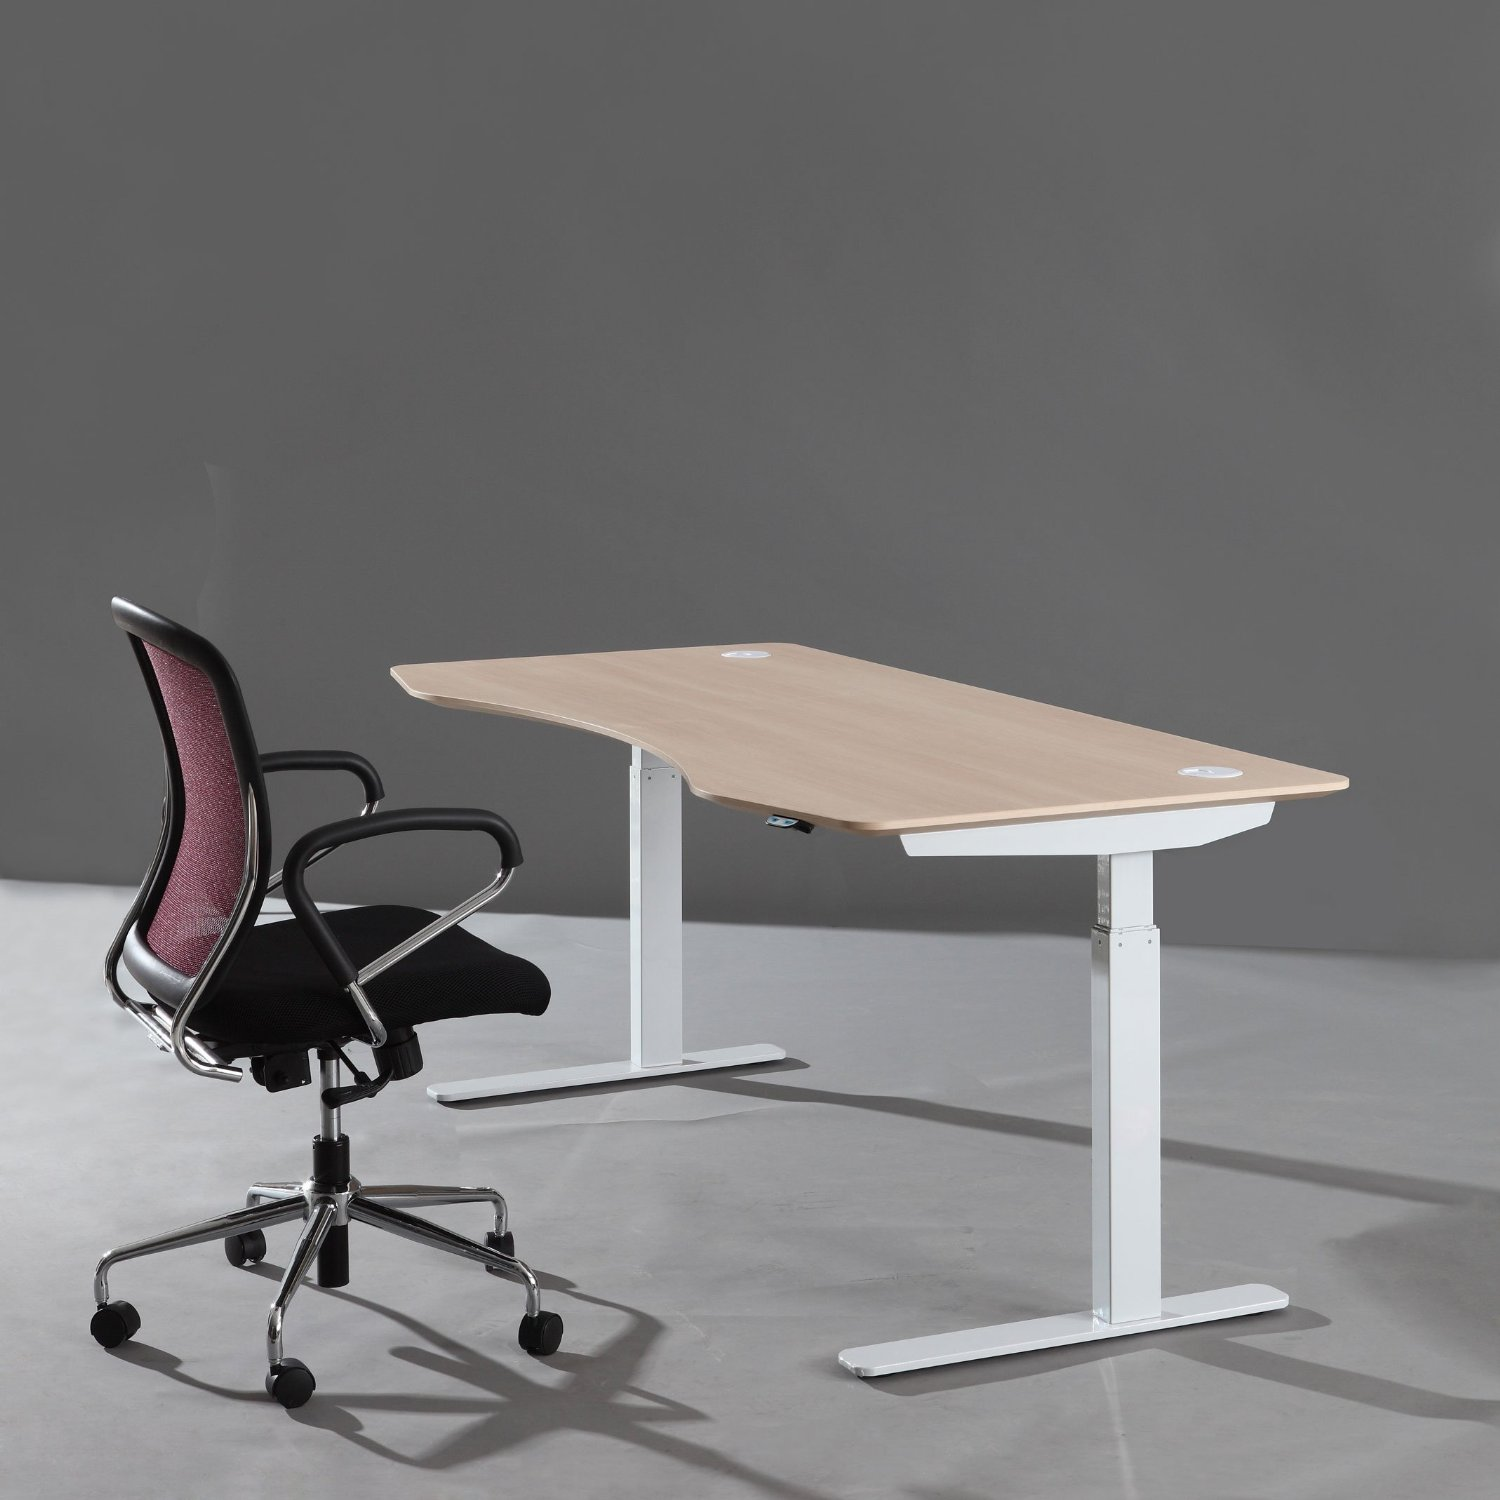 Standing sitting adjustable desk the revisionist for Chairs for standing desks